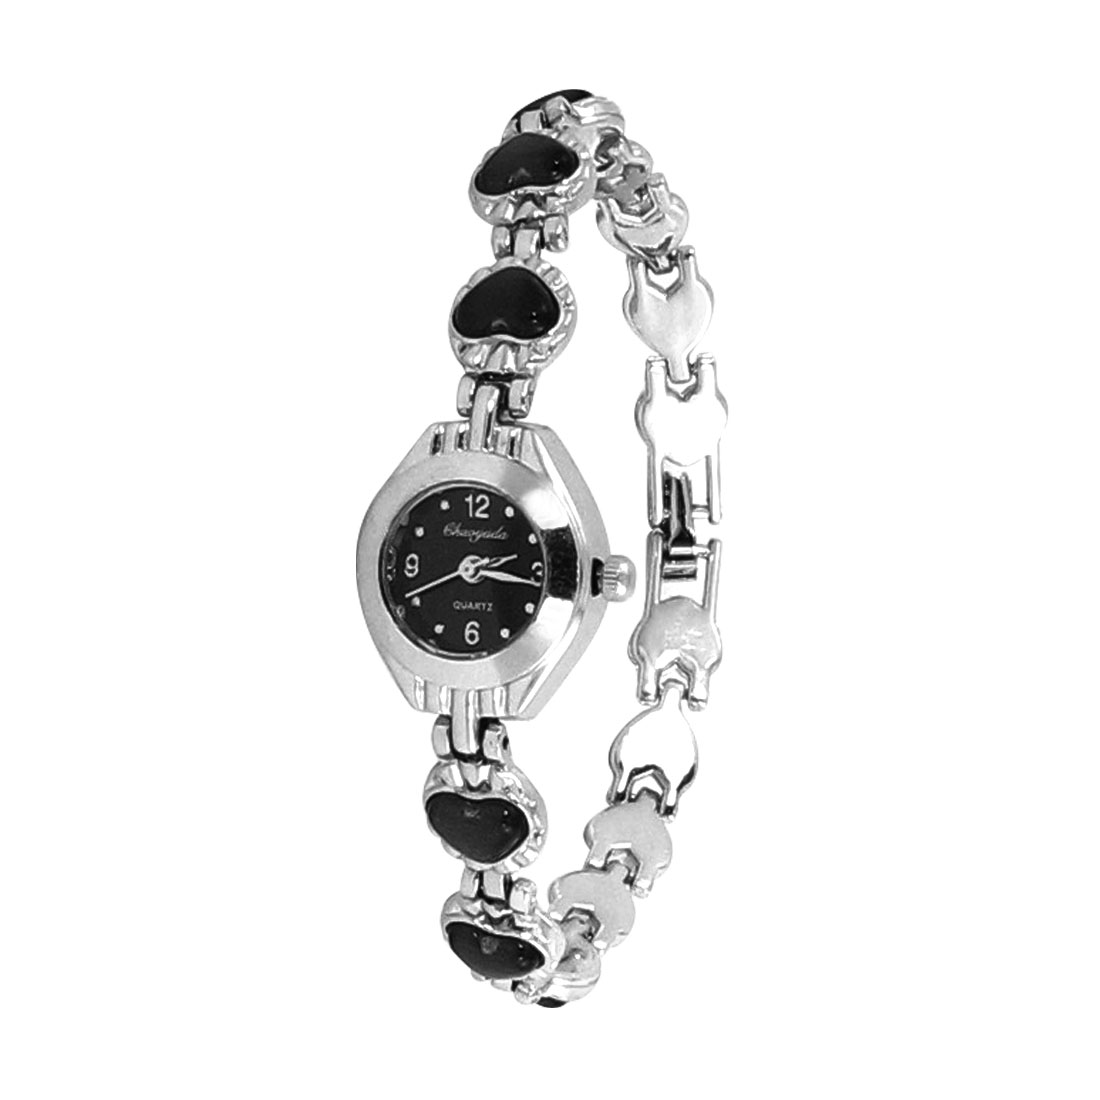 Black Round Dial Heart Pattern Accent Wristband Silver Tone Bracelet Watch